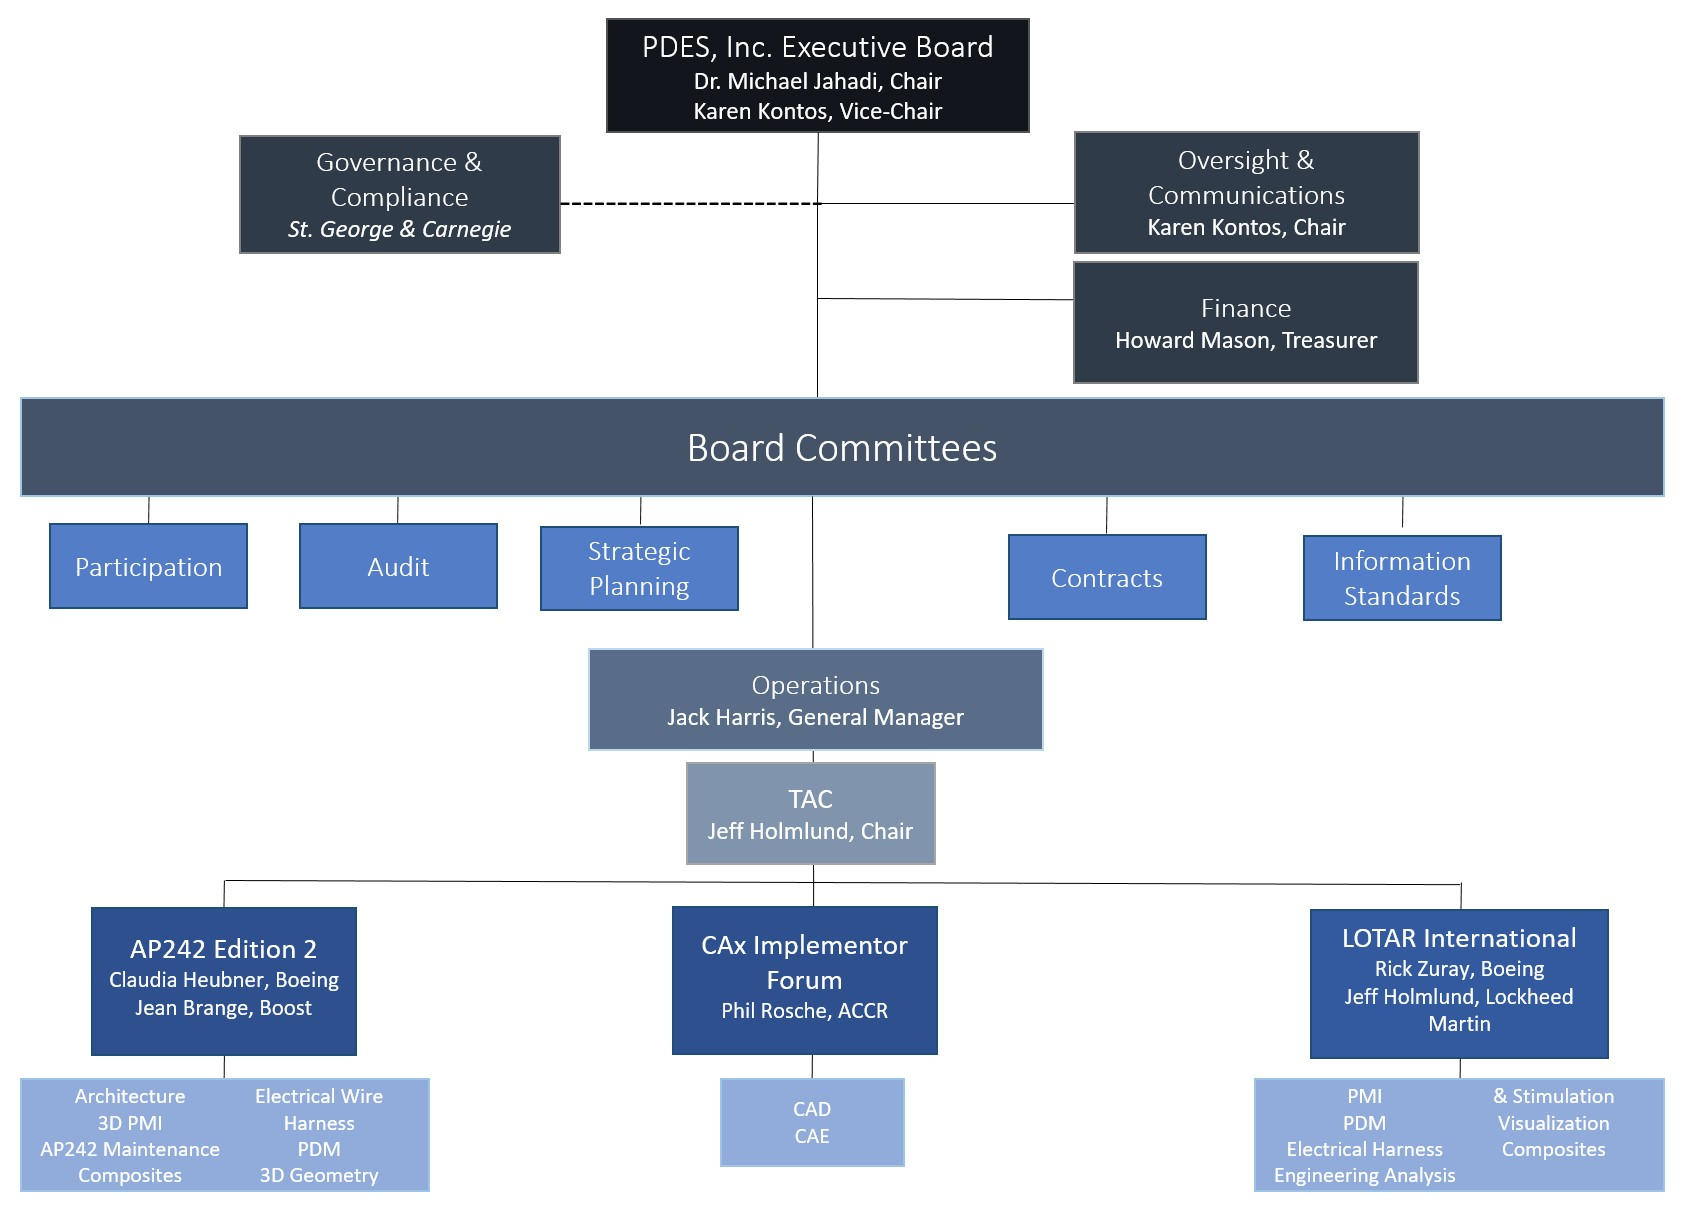 PDES Org Chart 2017